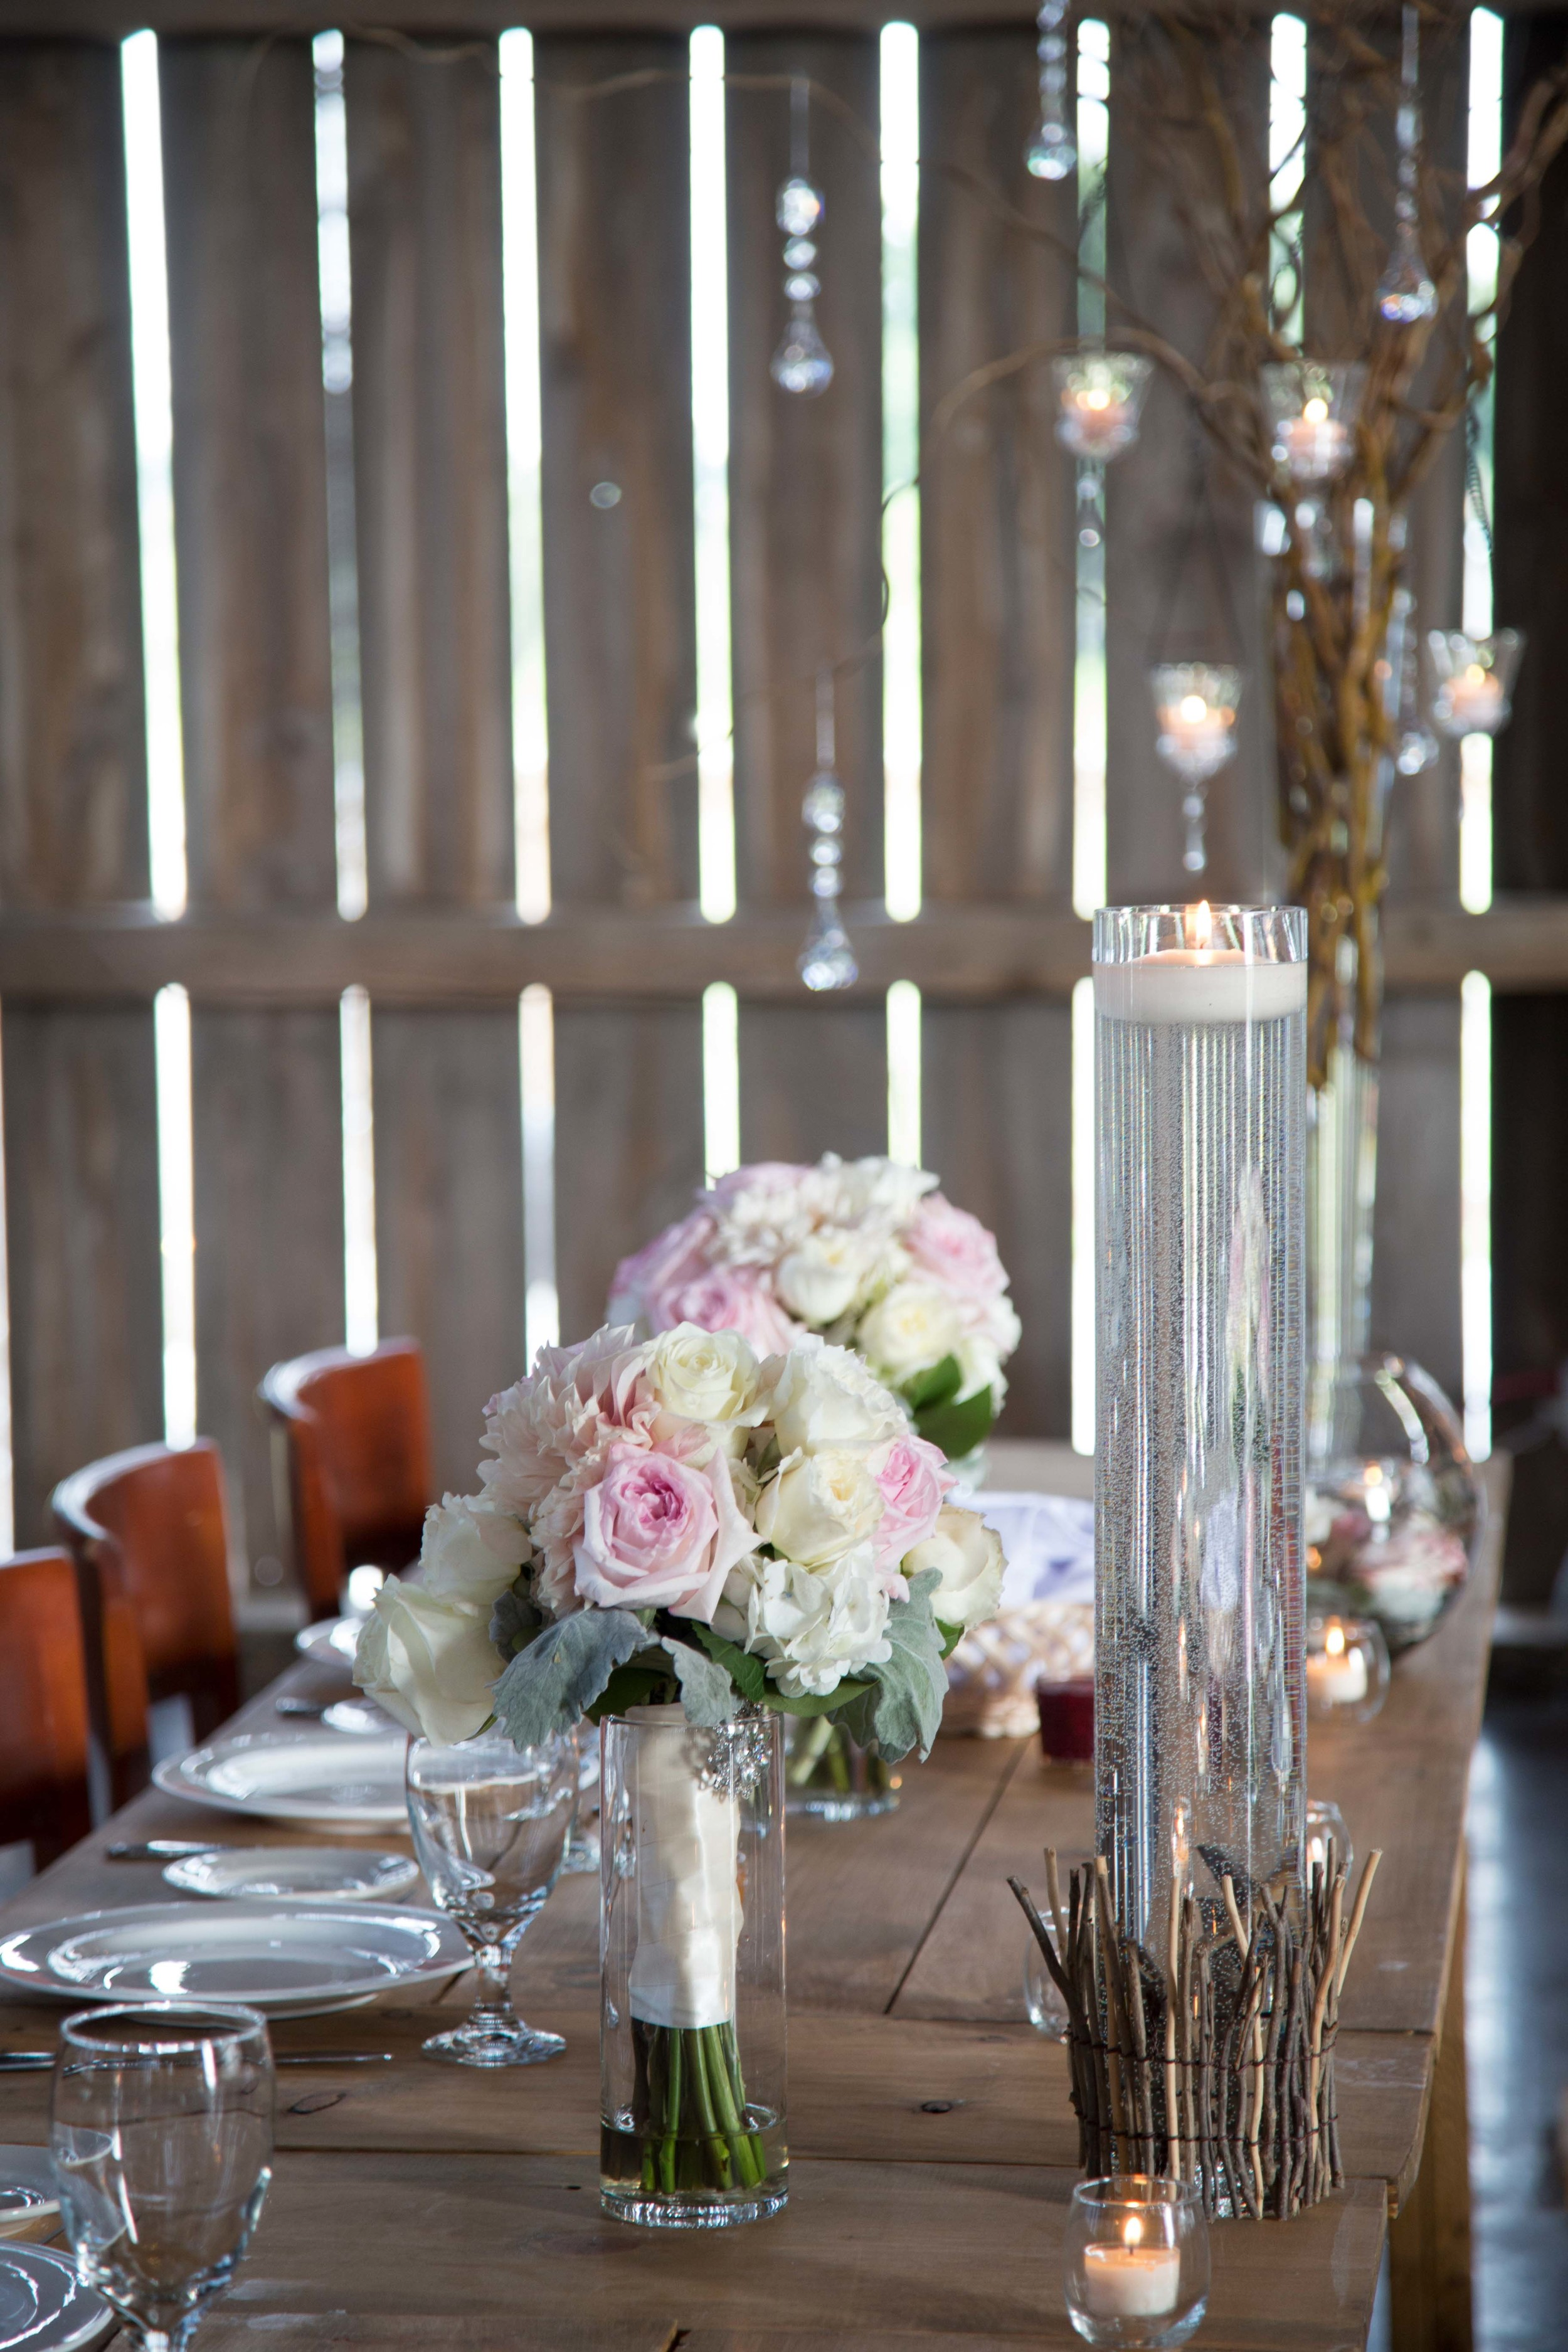 7-3-Barn_Dinner_Head_TABLE_6753 2.jpg